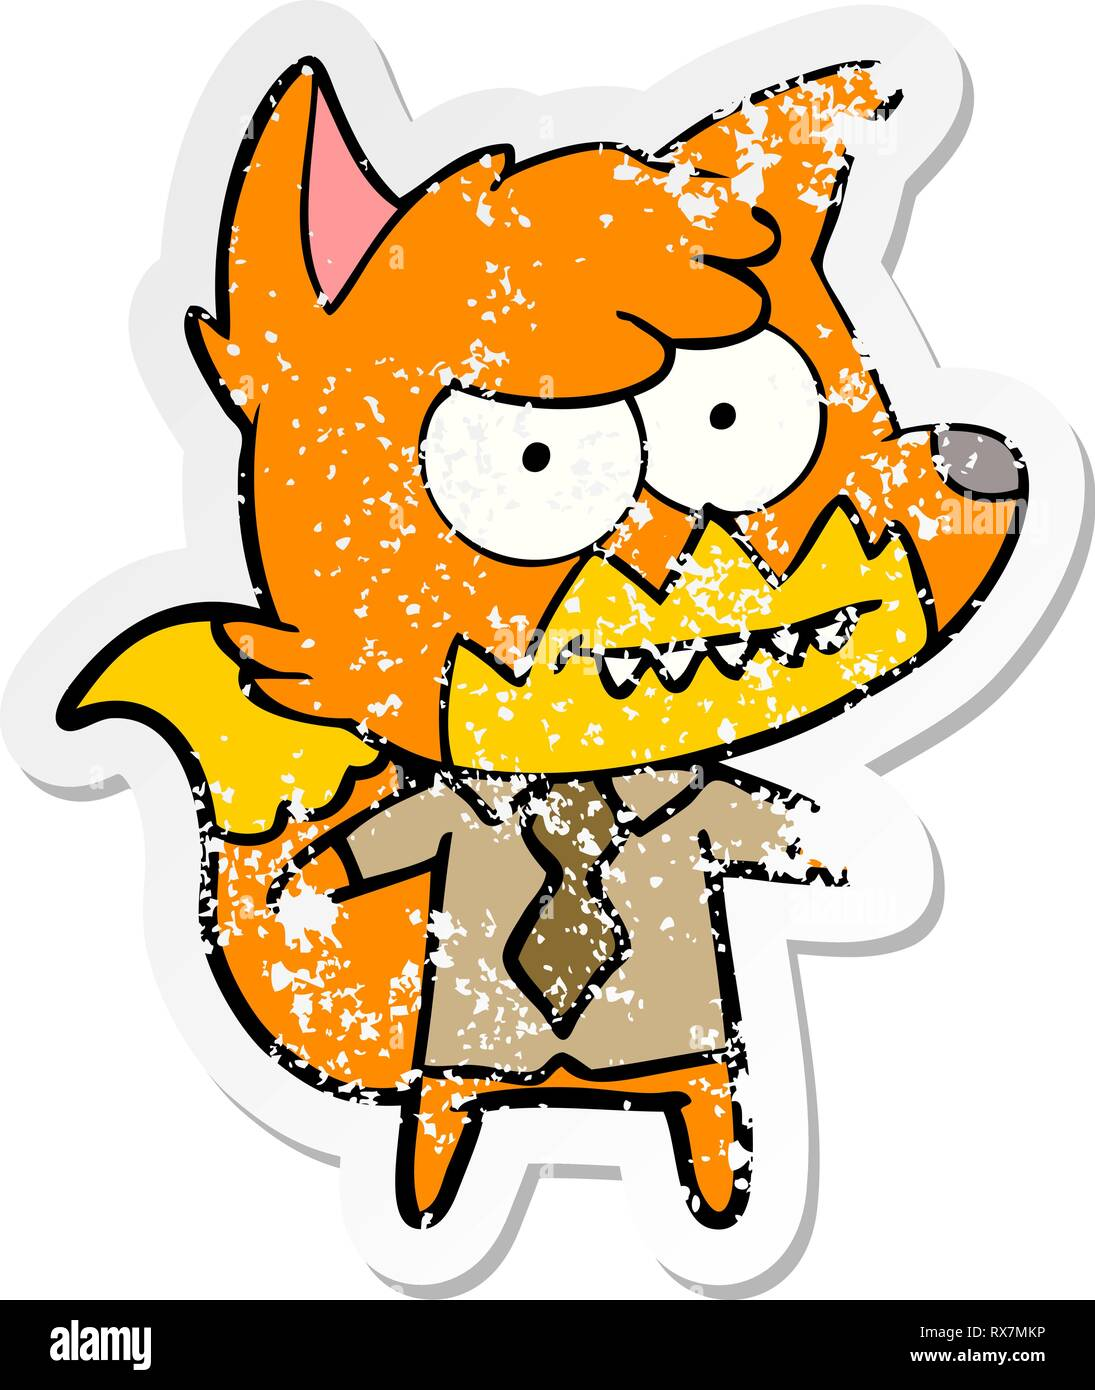 distressed sticker of a cartoon grinning fox - Stock Image